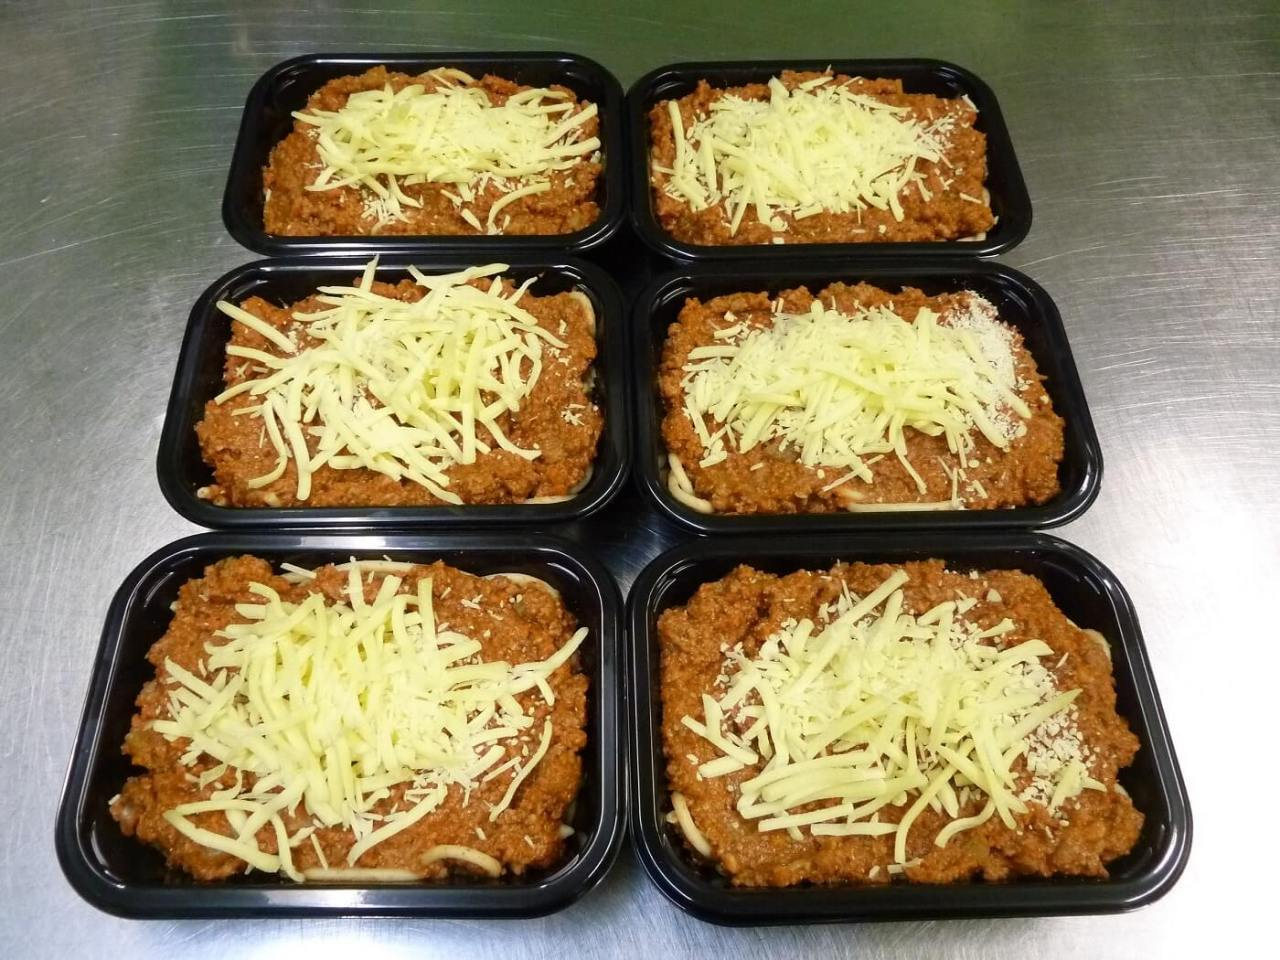 Six Pasta Bolognaise ready-meals in packaging trays